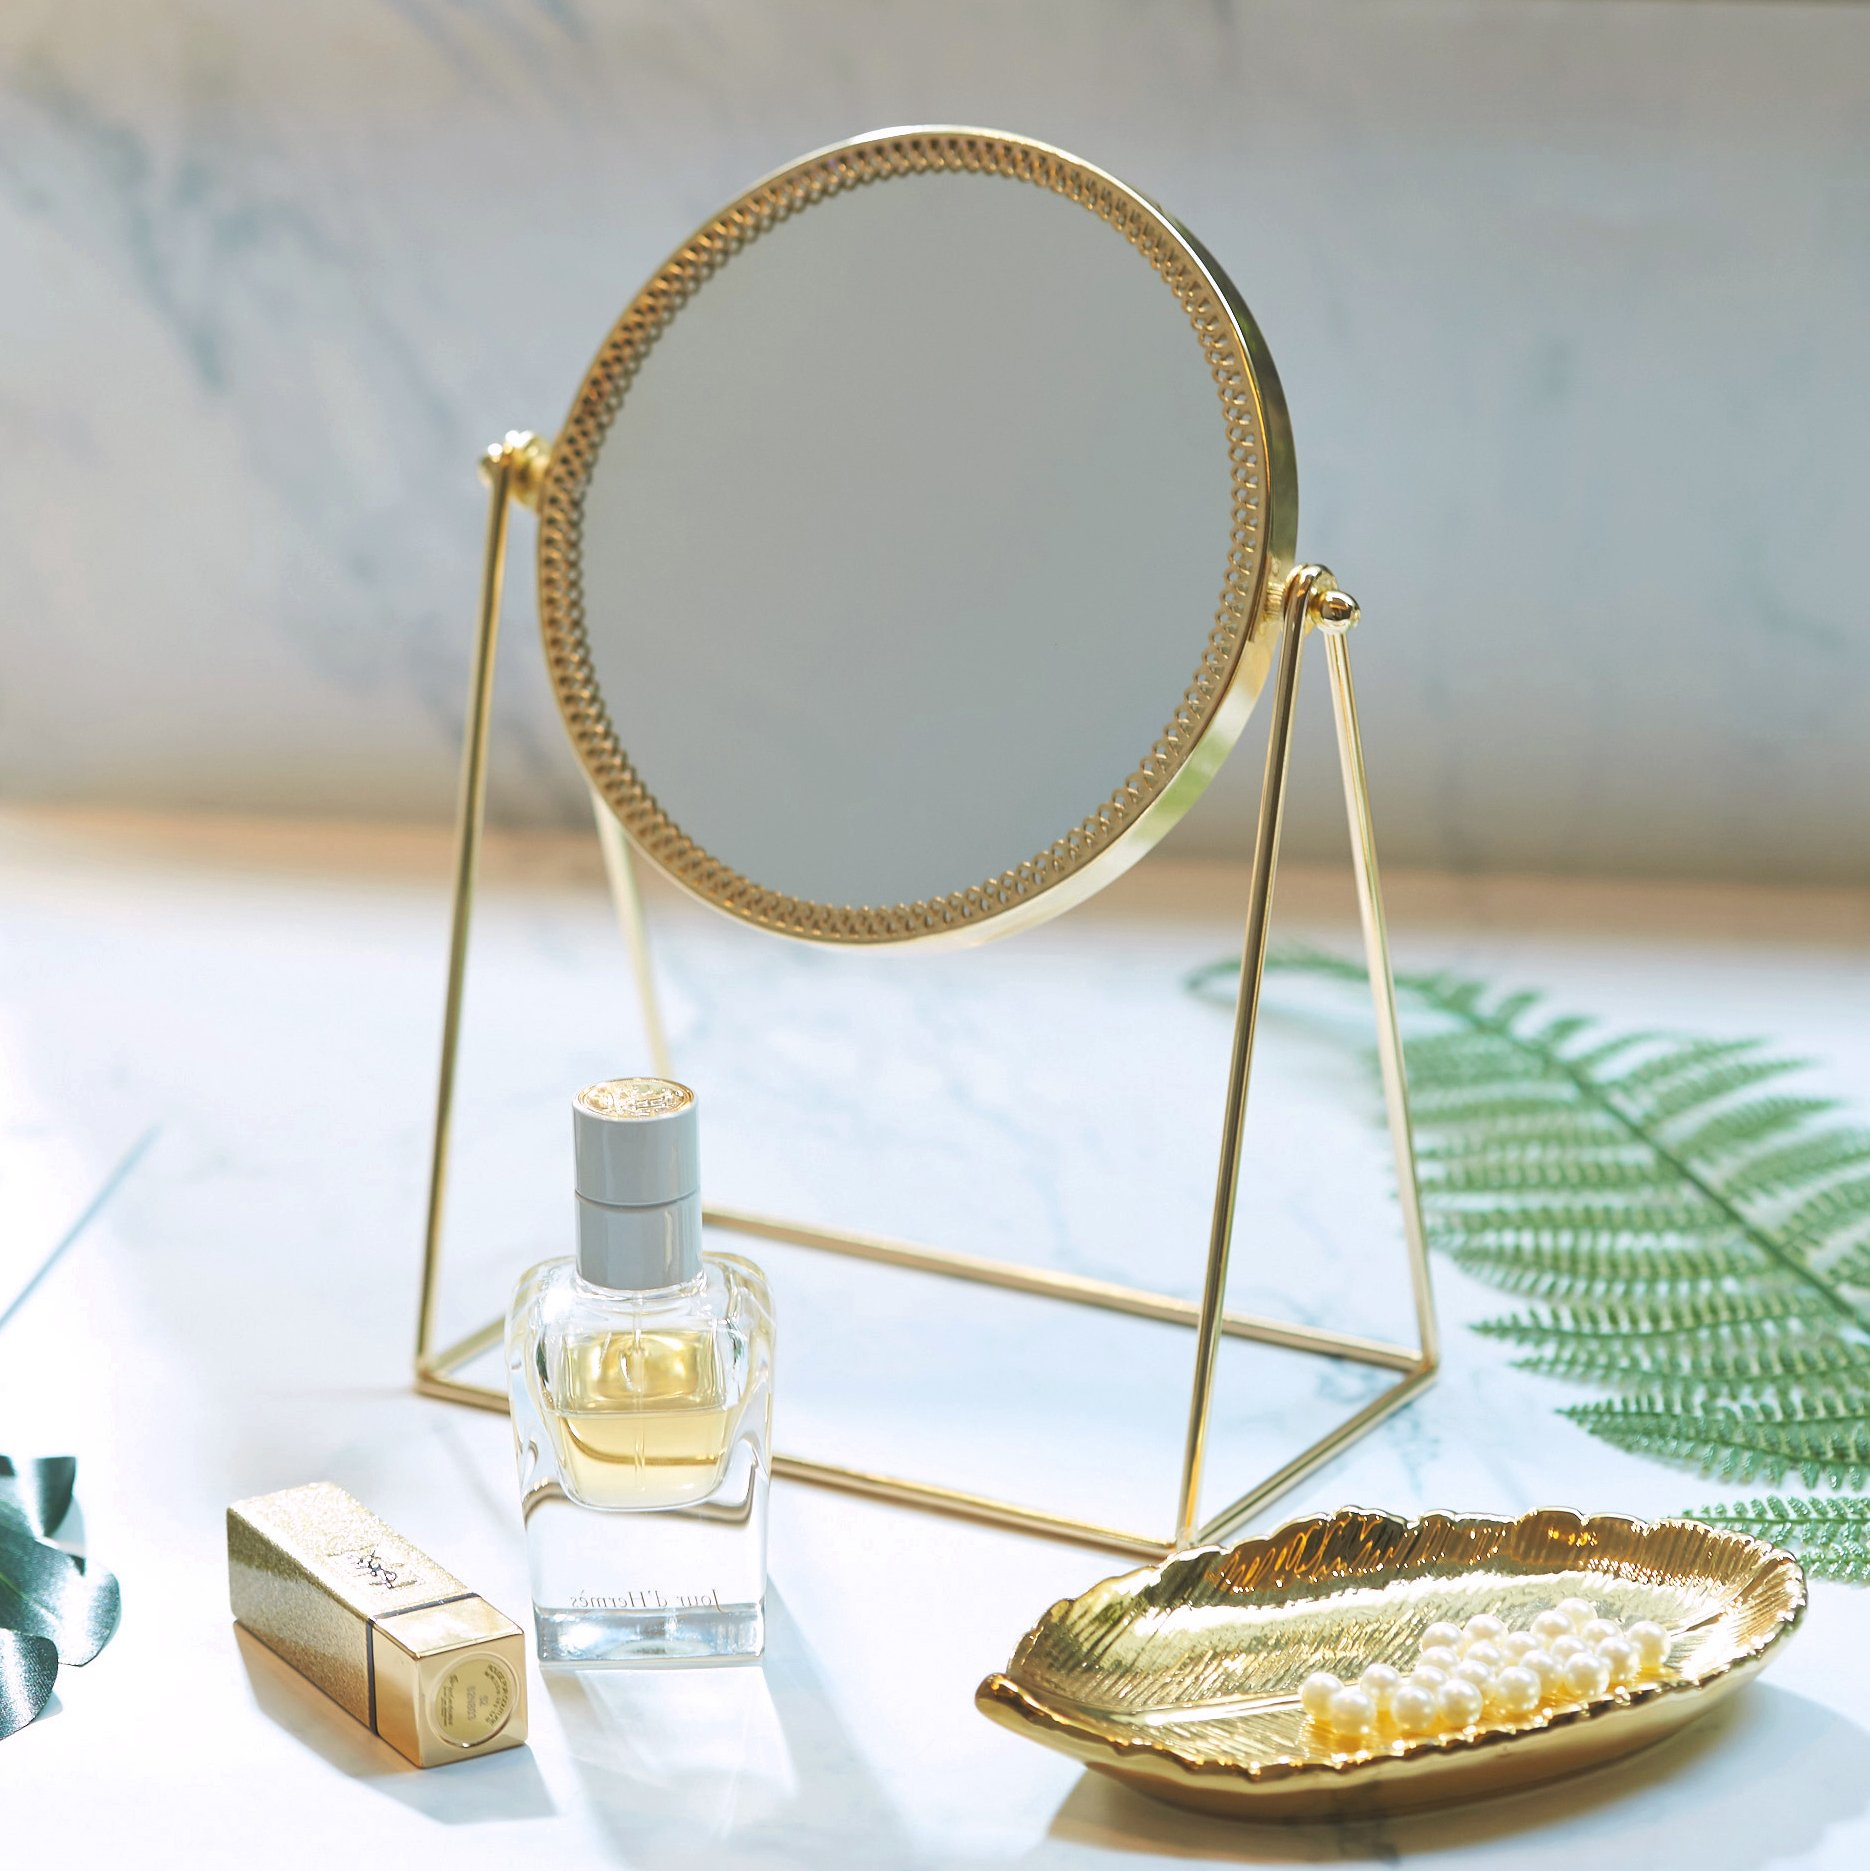 PuTwo Makeup Mirror Metal Gold Round Make-up Mirror Golden Makeup Vanity Mirror Decorative Mirrors Perfect Dressing Table - Champagne Gold by PuTwo (Image #1)